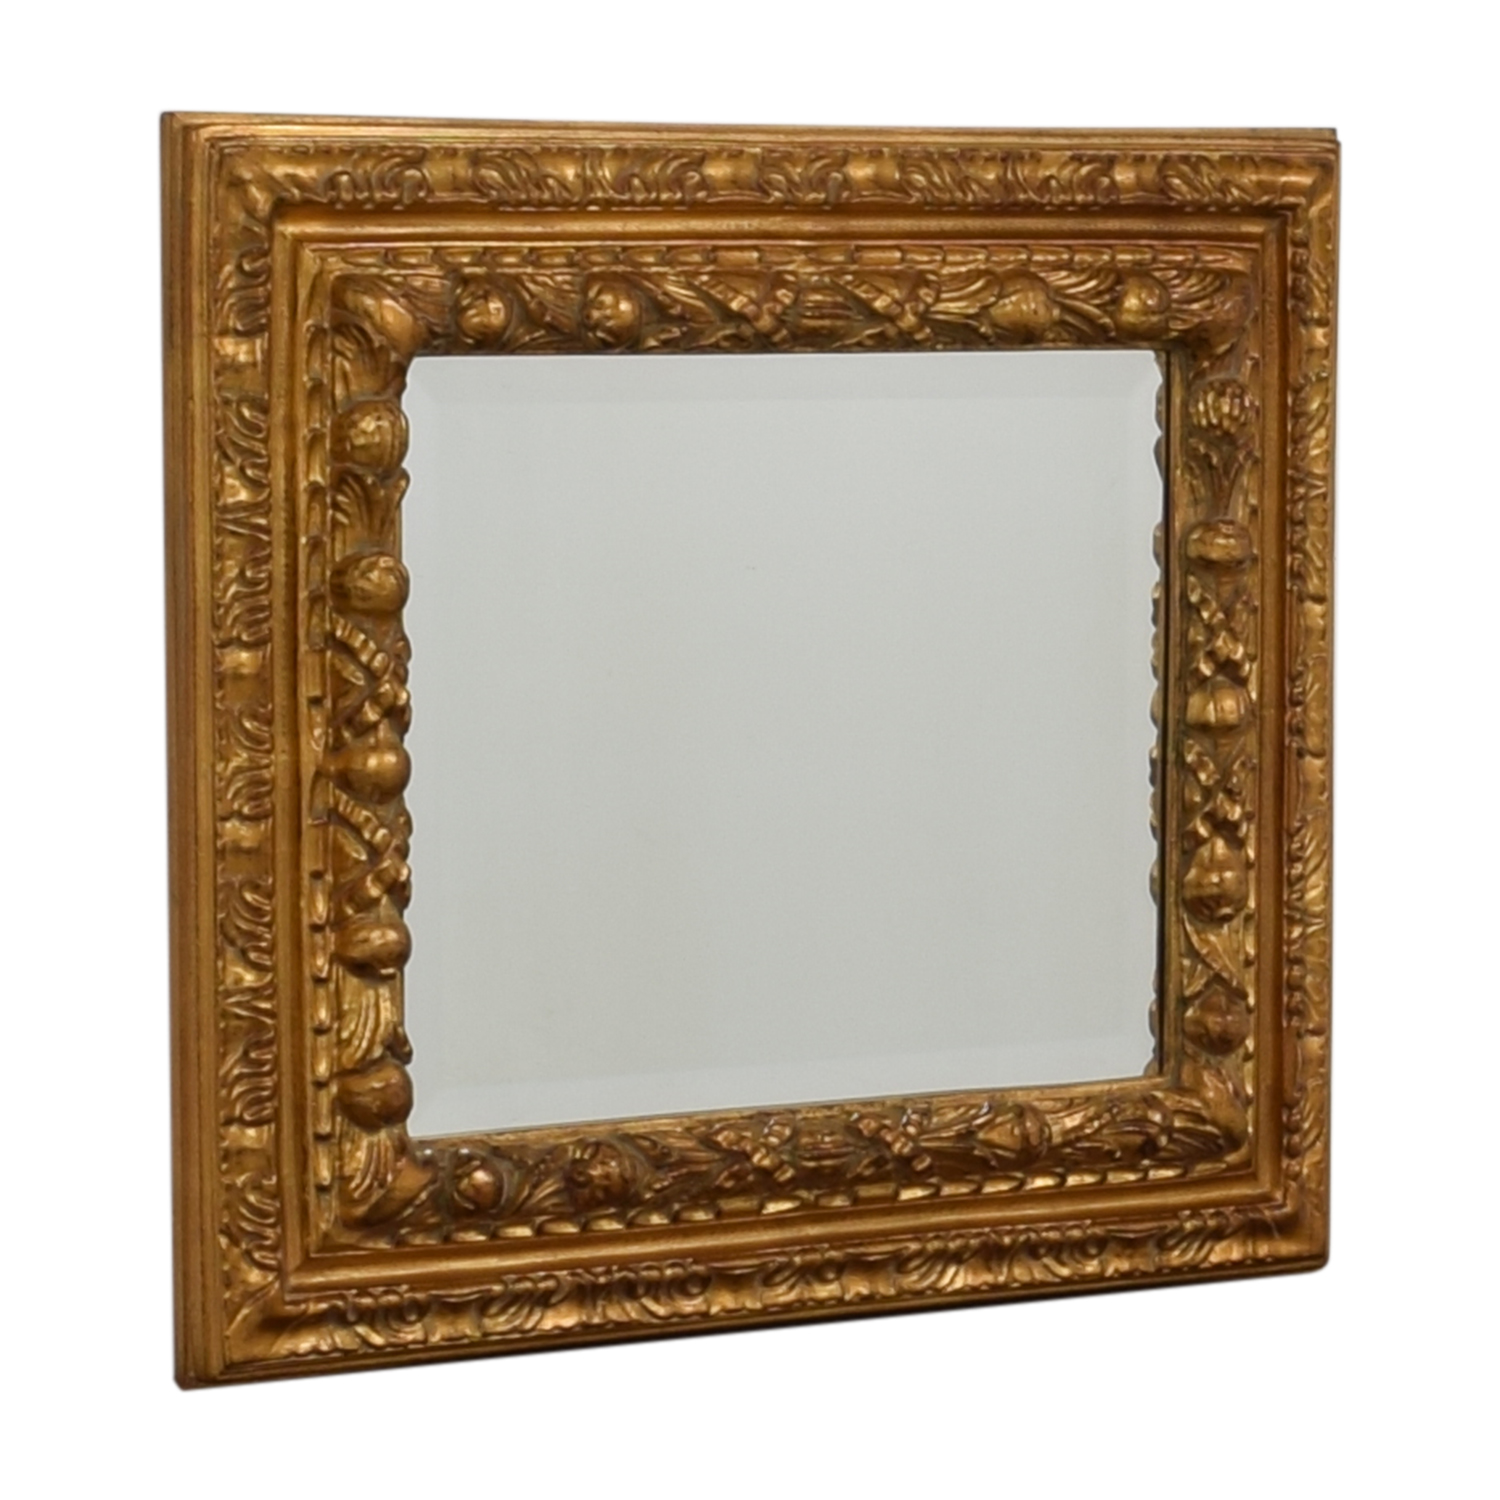 Gold Distressed Wood Framed Wall Mirror